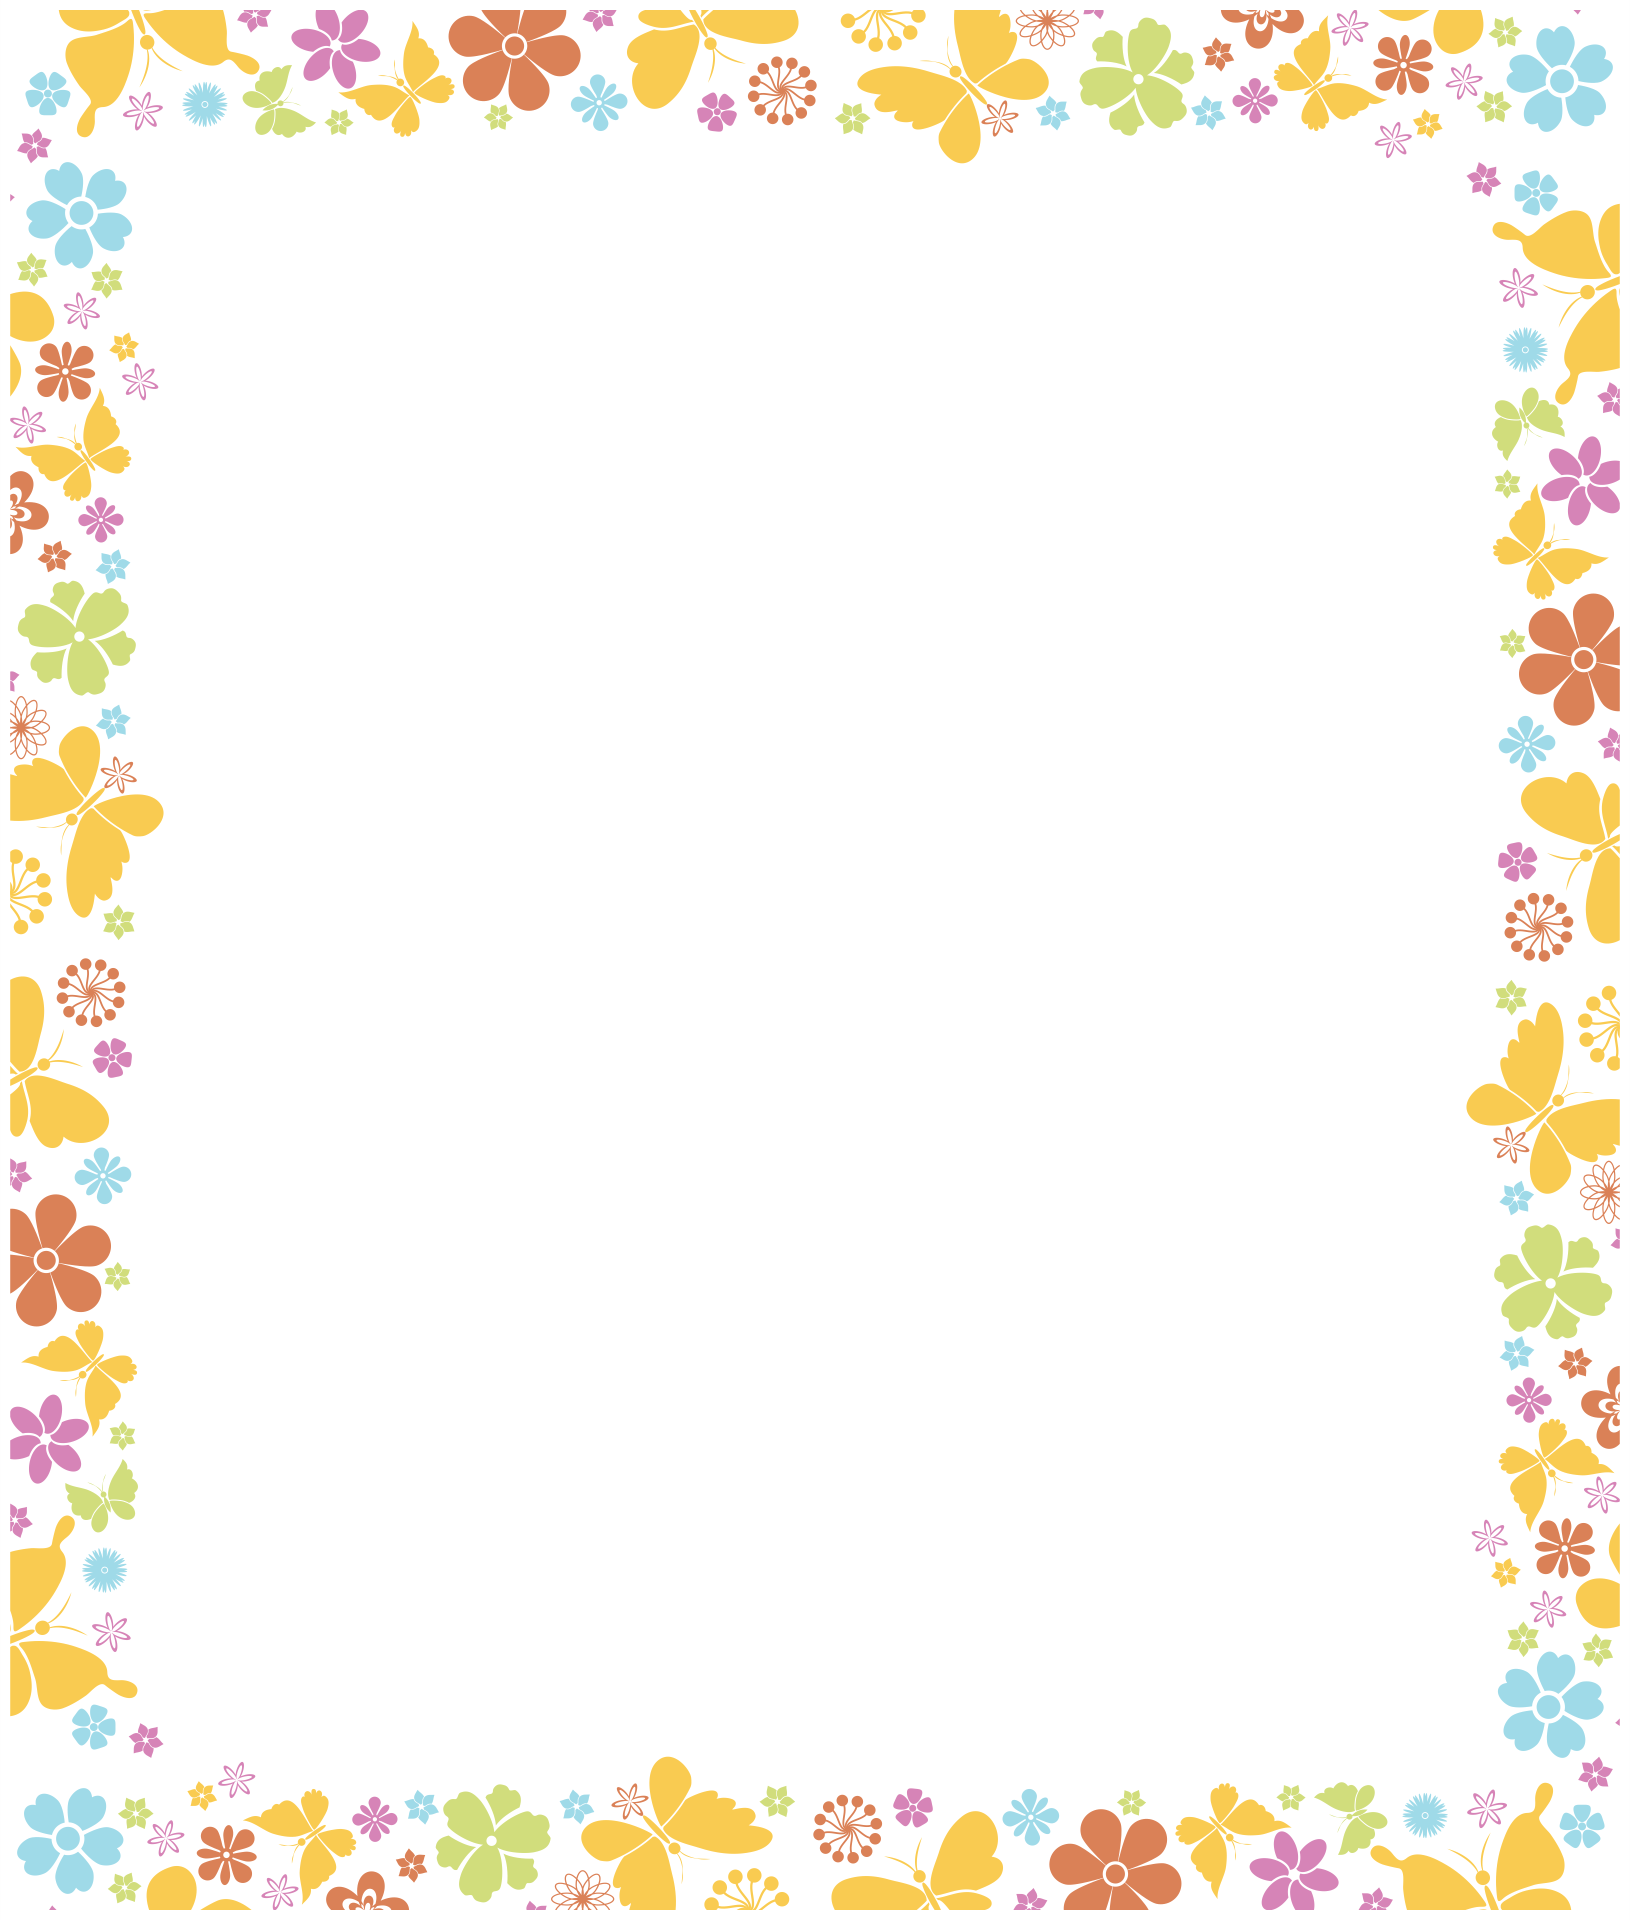 Clip Art Butterfly Pictures